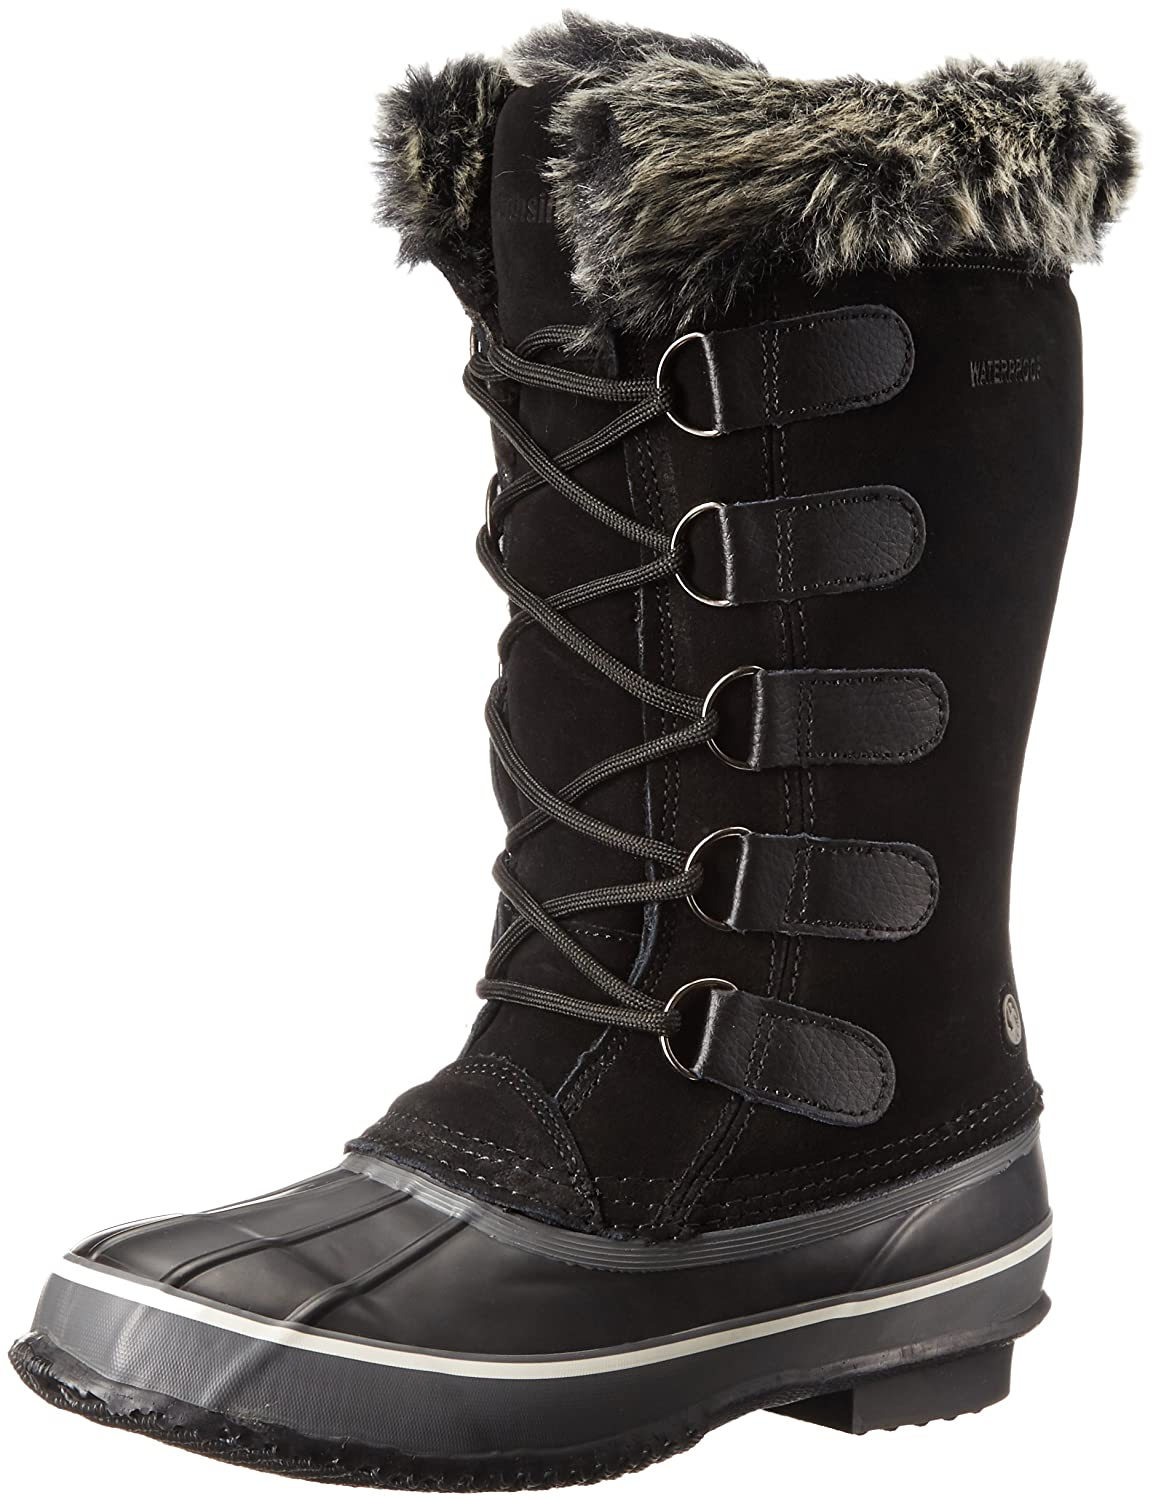 Northside Women's Kathmandu Waterproof Snow Boot B01BSOS9A4 9 B(M) US|Onyx